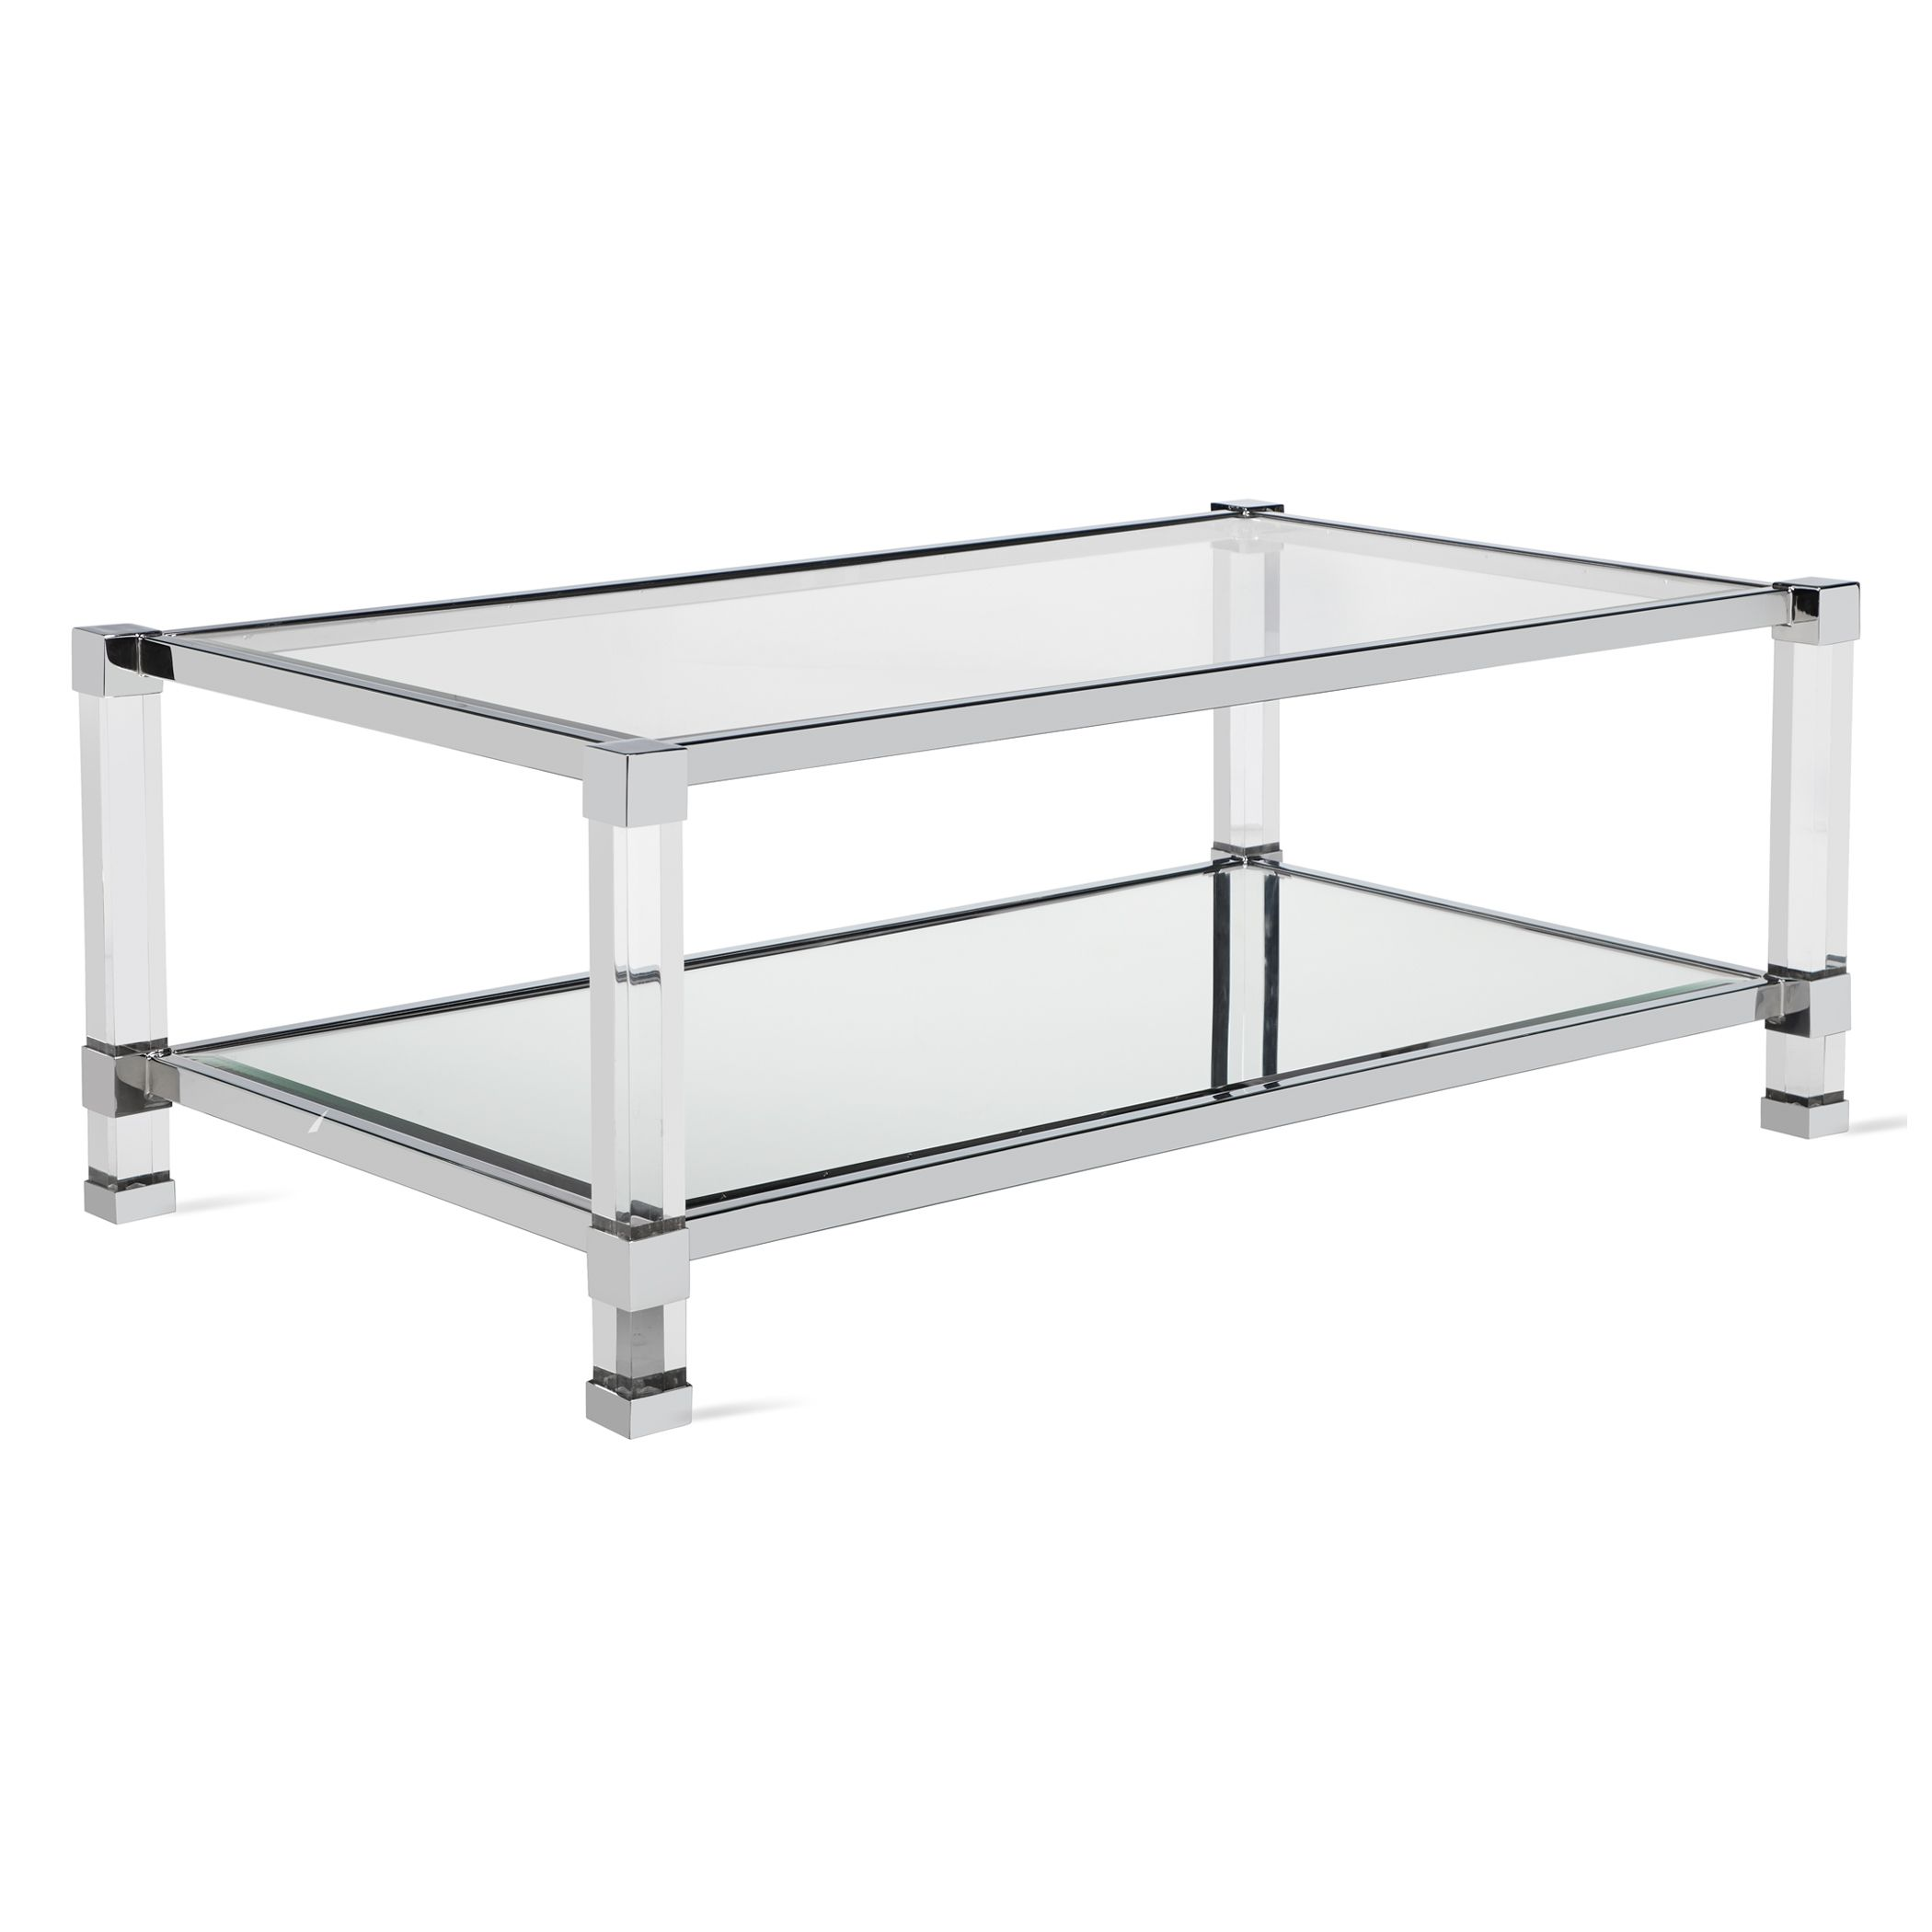 Savoy Coffee Table   Savoy Collection   Collections   Z ...